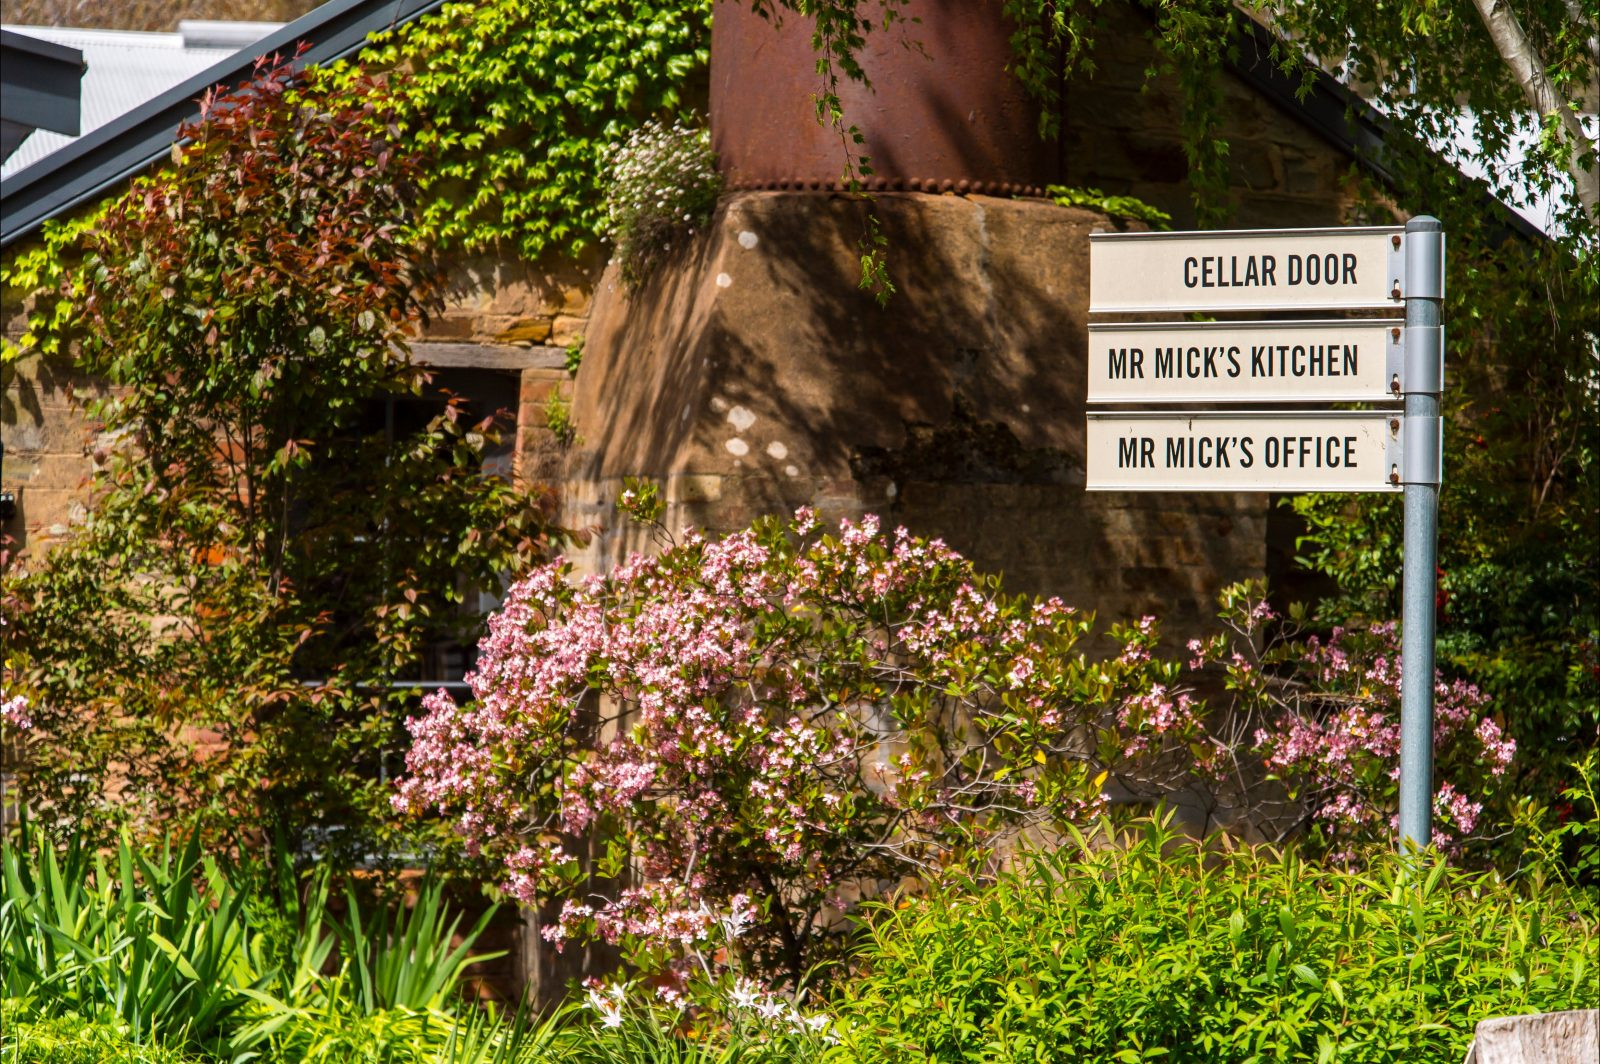 Conveniently located adjacent to the Riesling Trail at 7 Dominic Street, Clare.